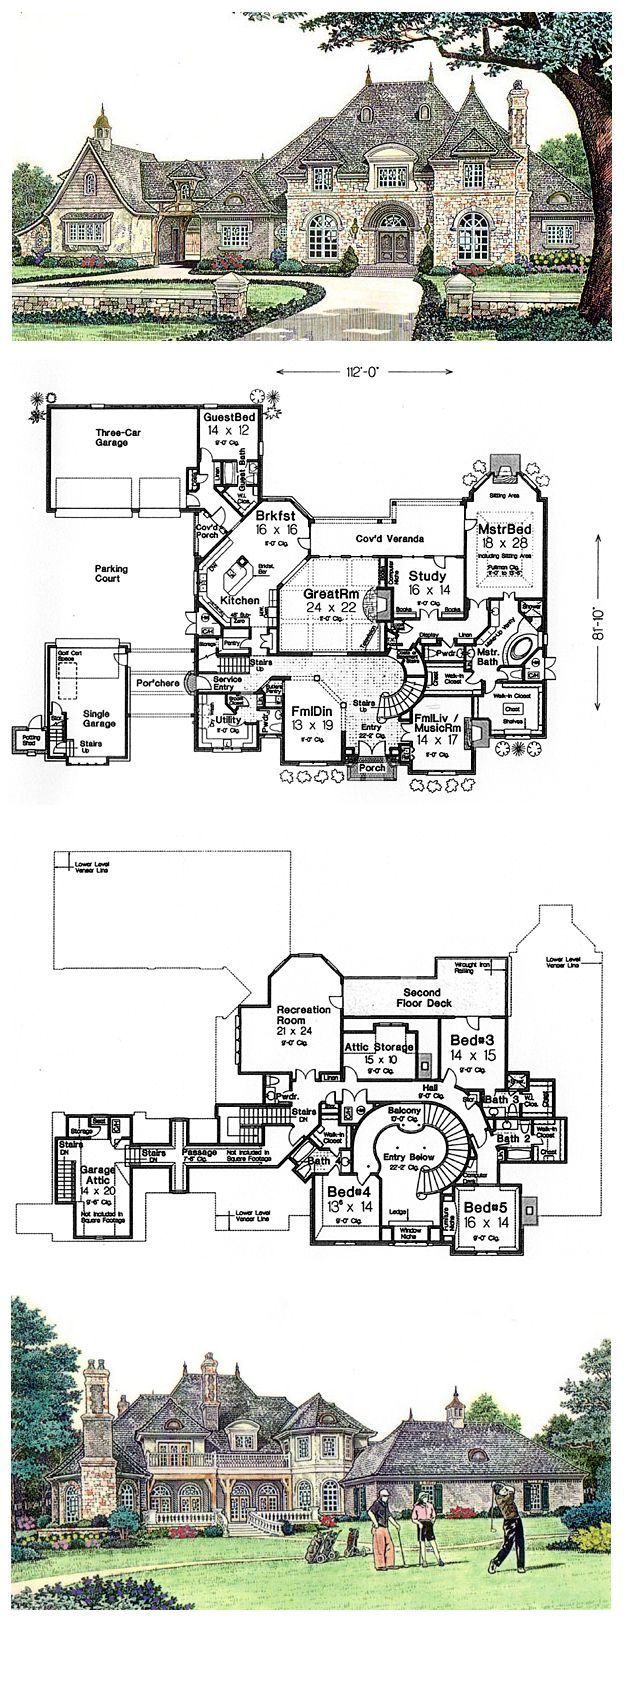 best 25 french chateau homes ideas on pinterest french chateau cool house plan id chp 39871 total living area 6274 sq ft